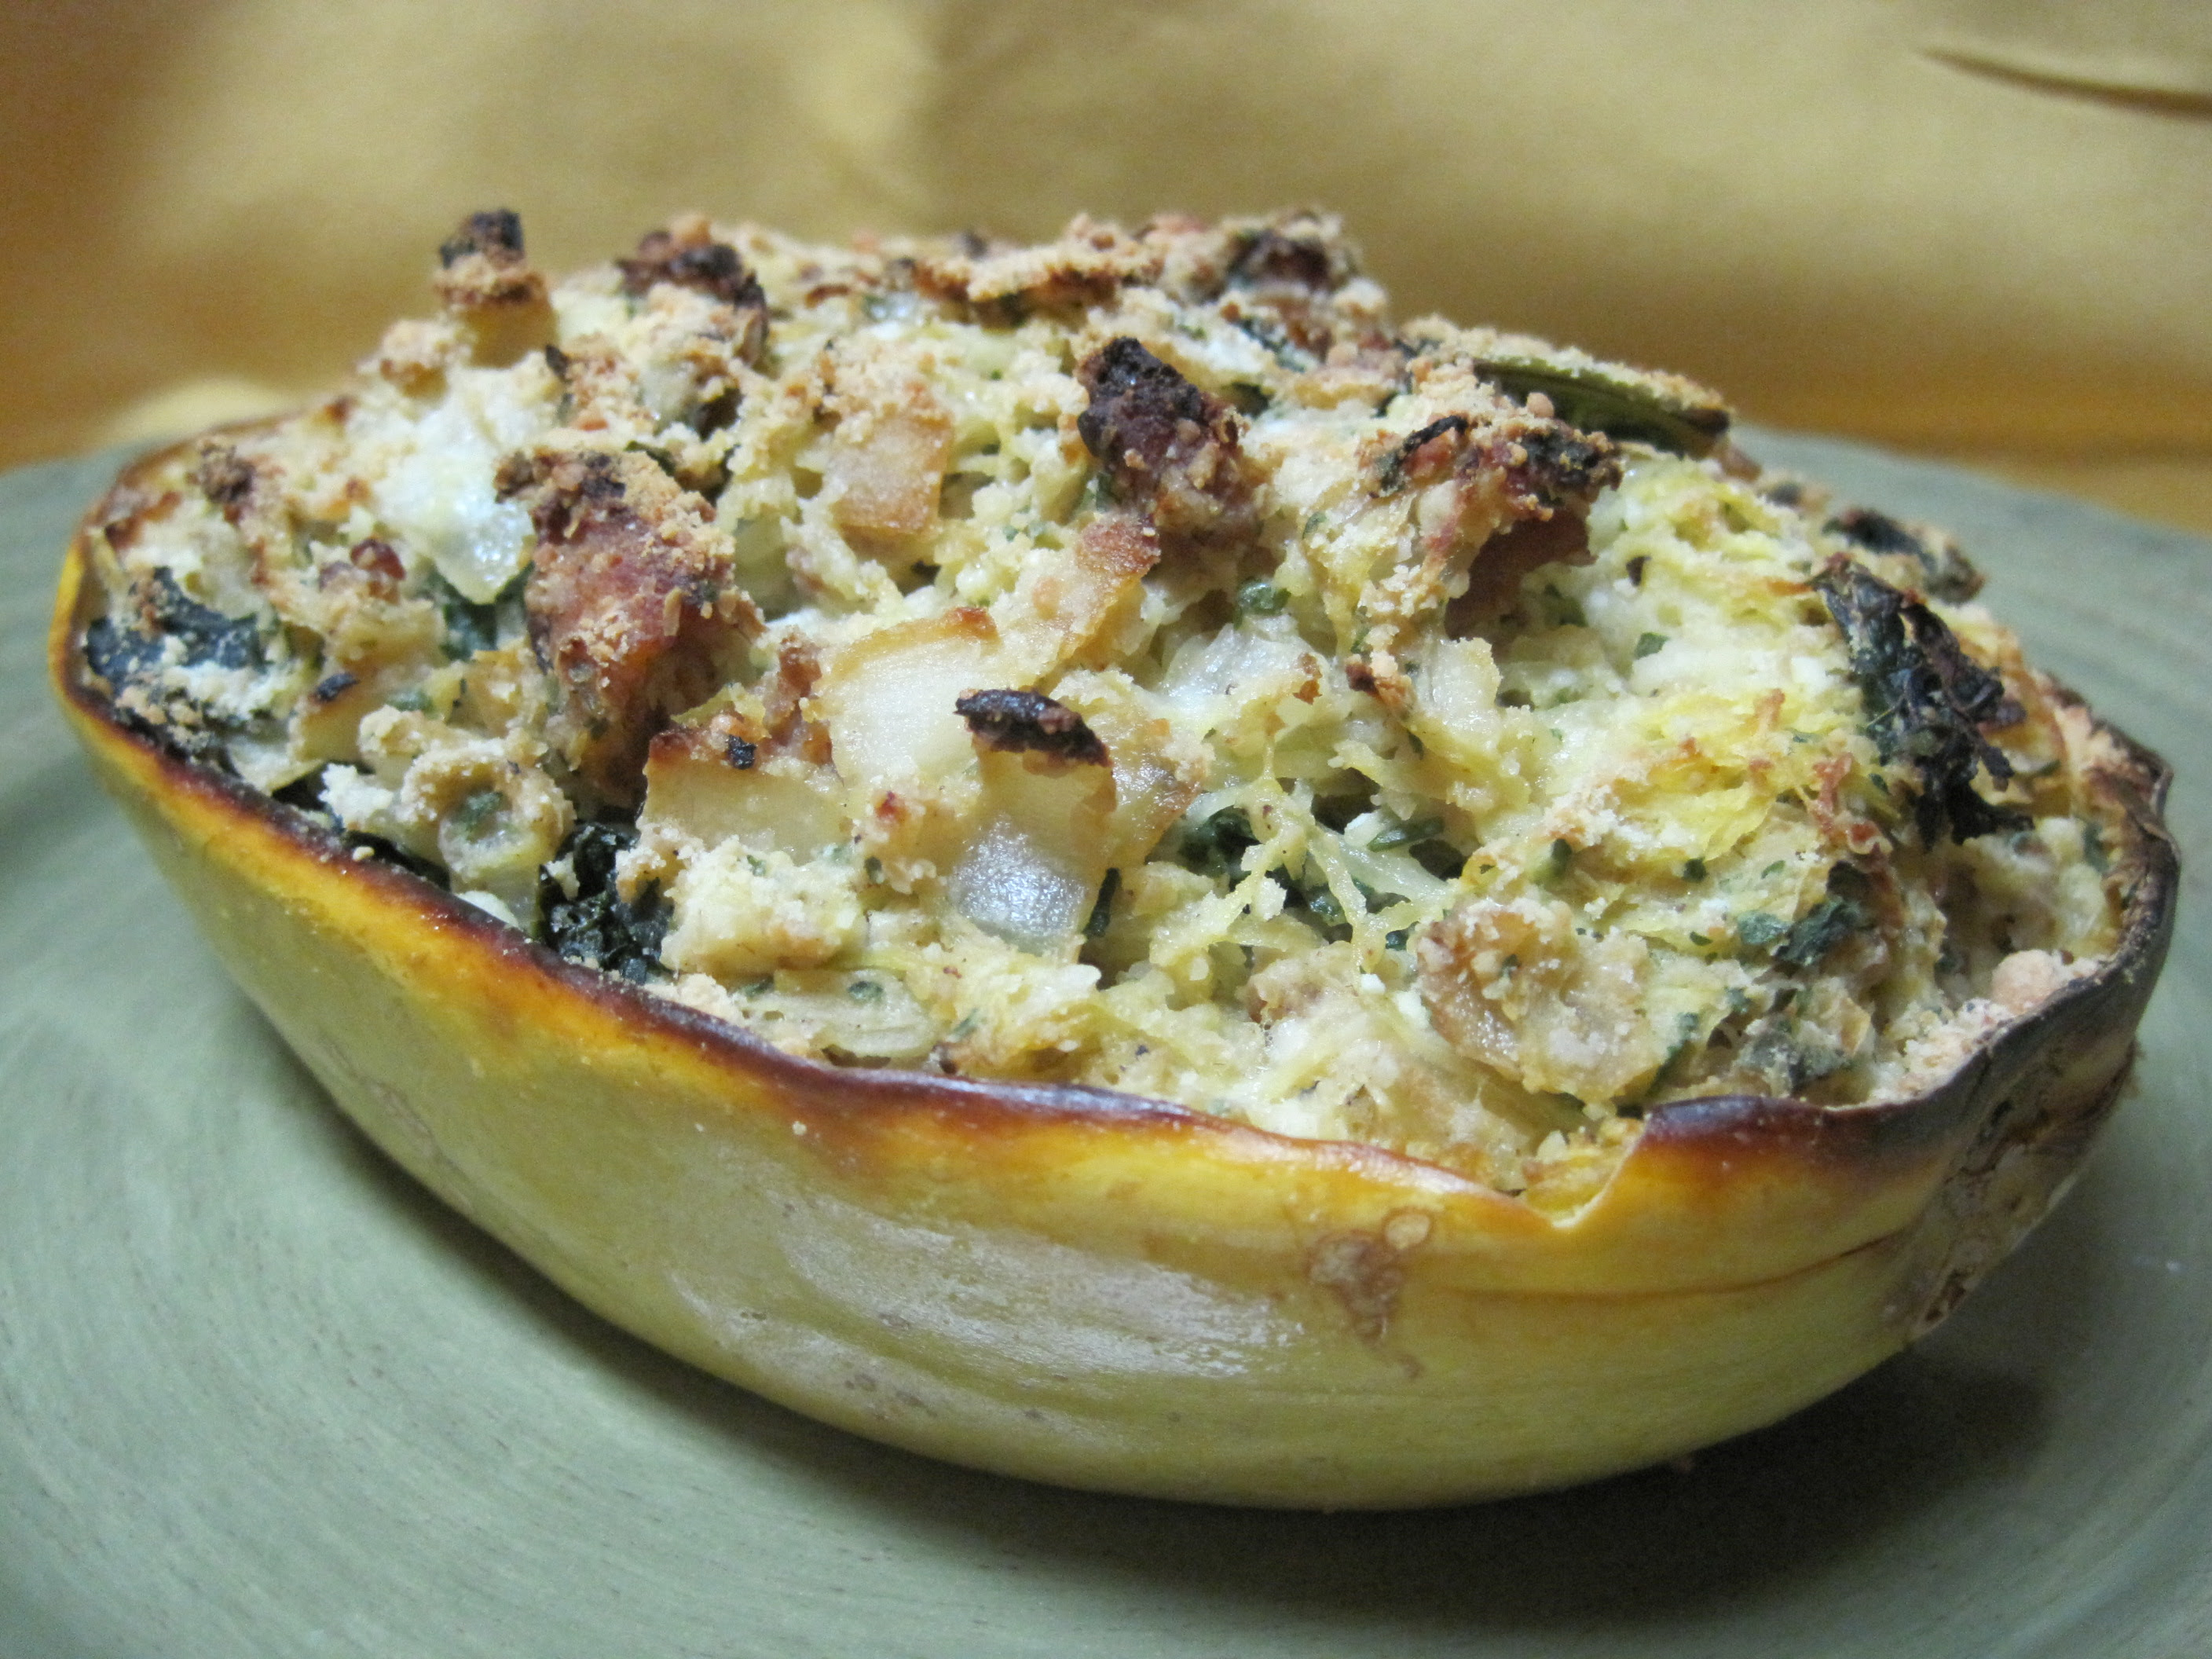 dukan diet recipe Spaghetti Squash, Ground Pork and Kale Bake